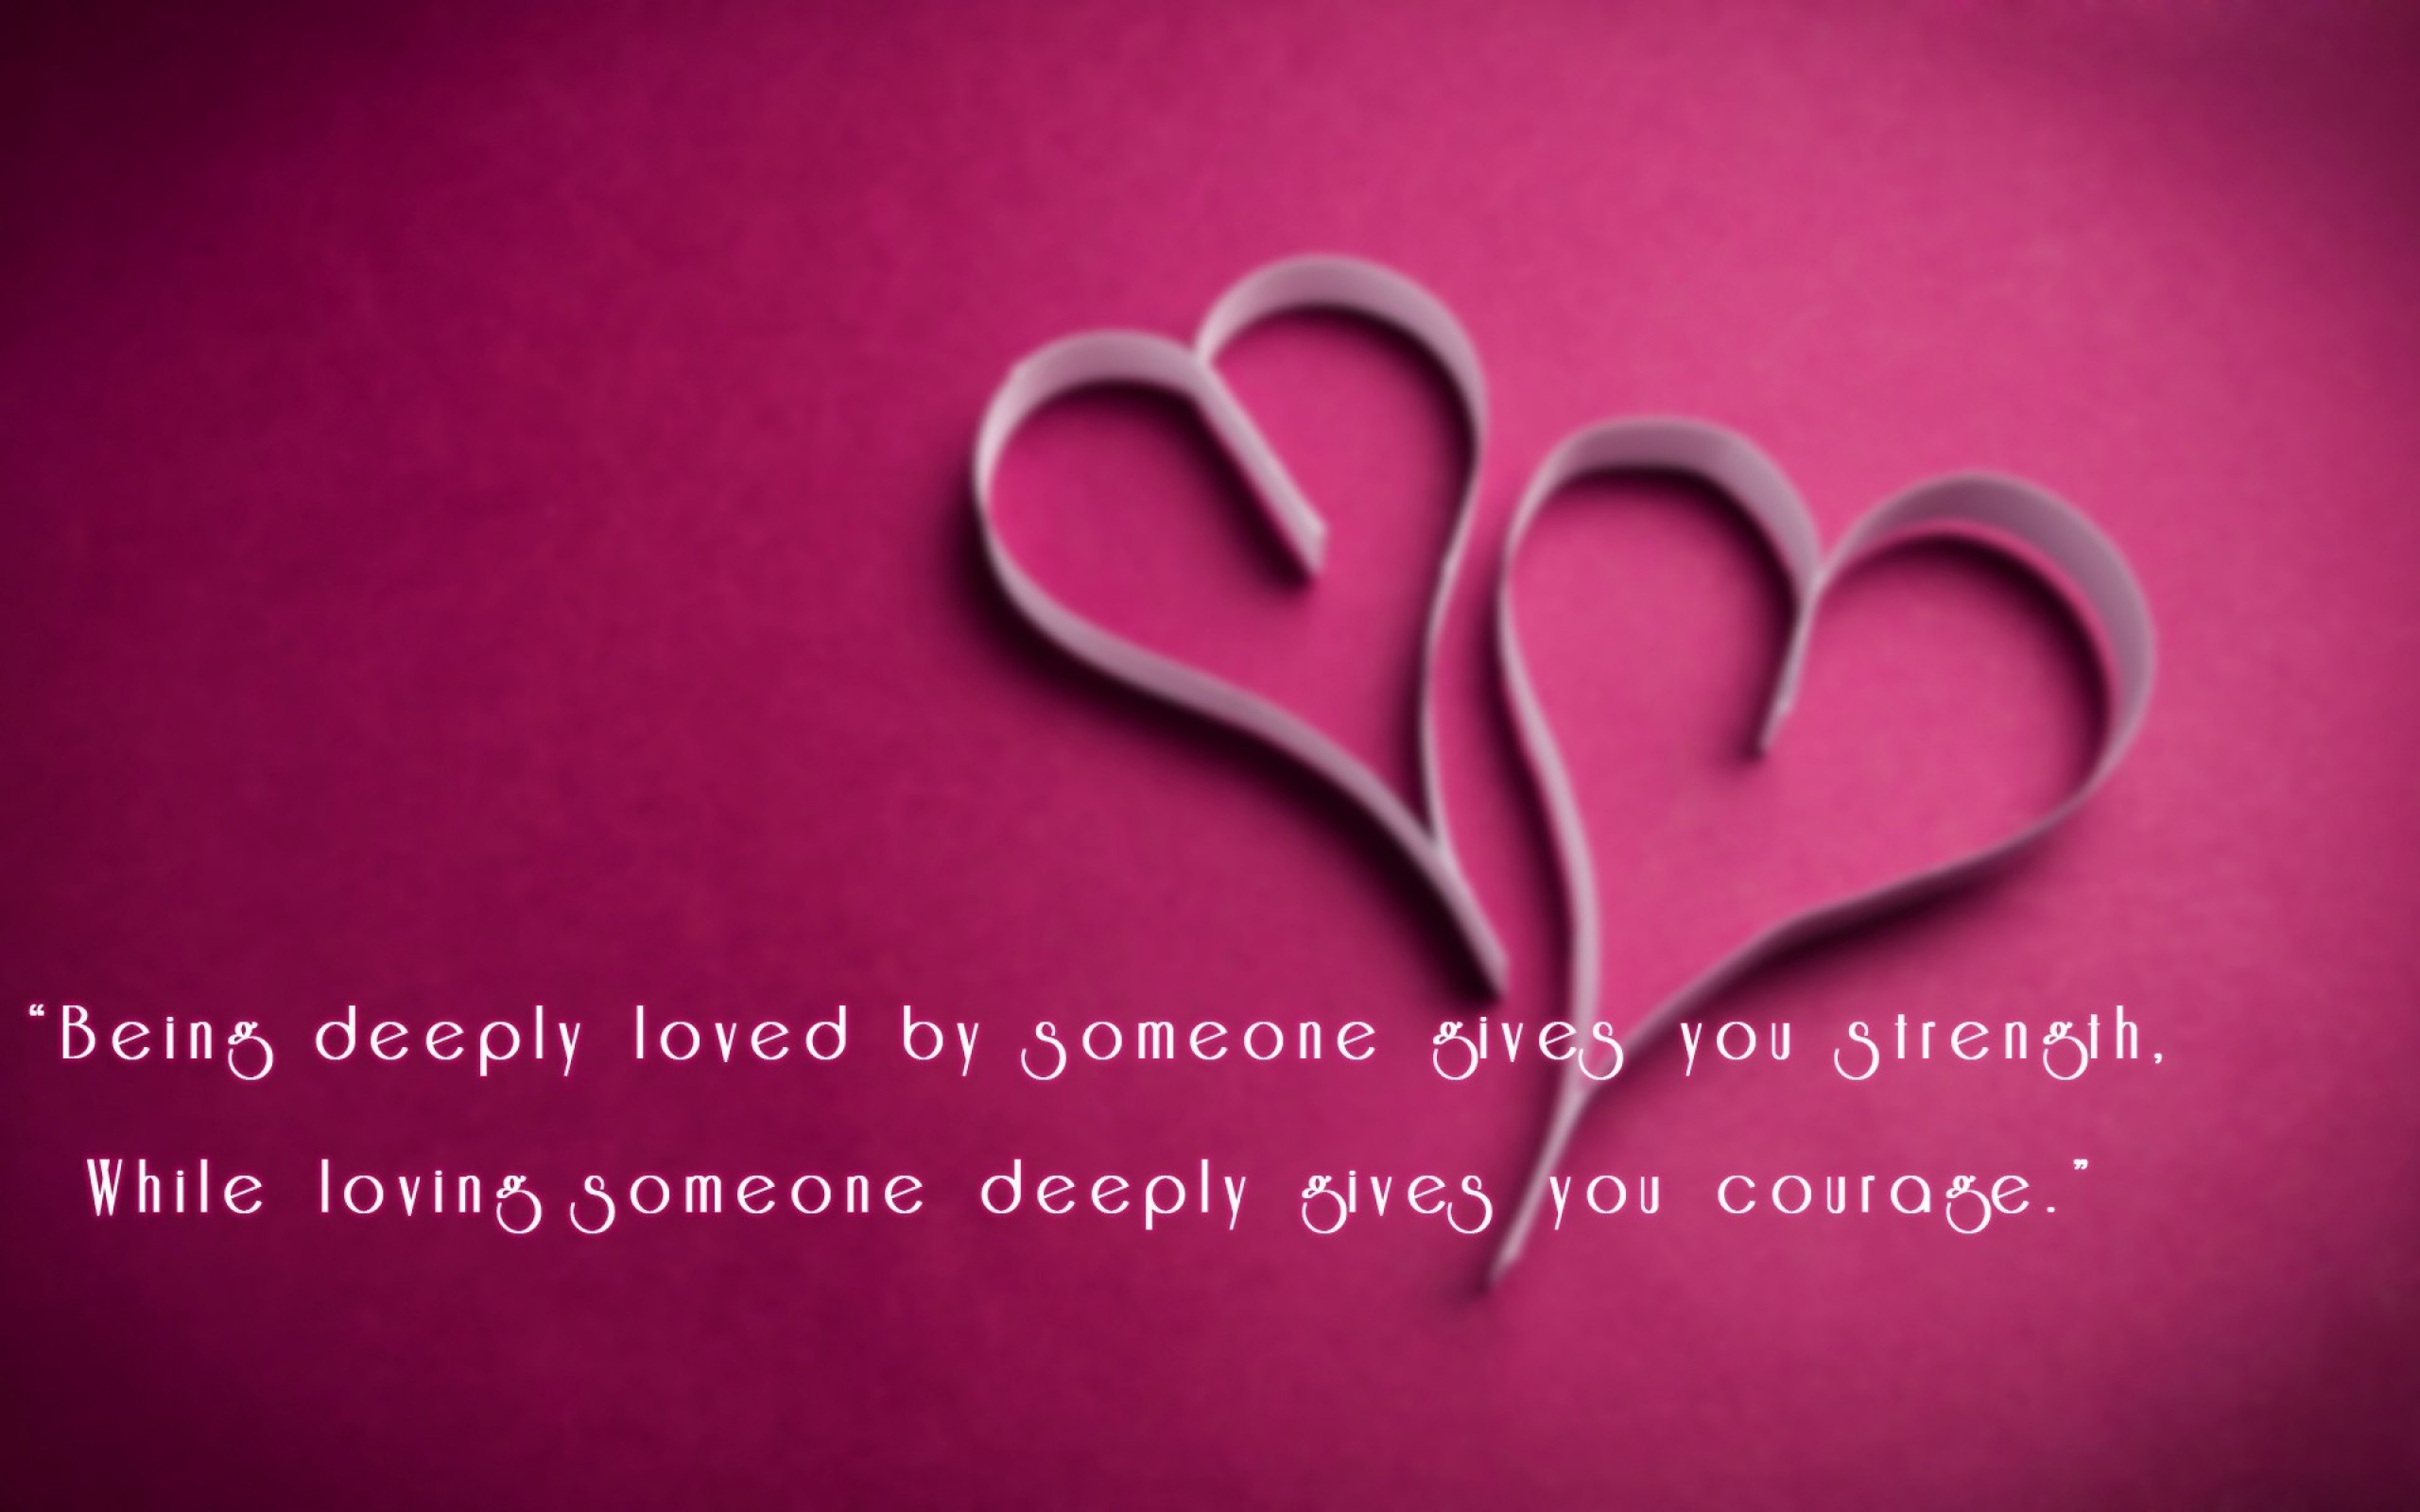 Cool wallpapers with quotes 67 images - Cool love images ...